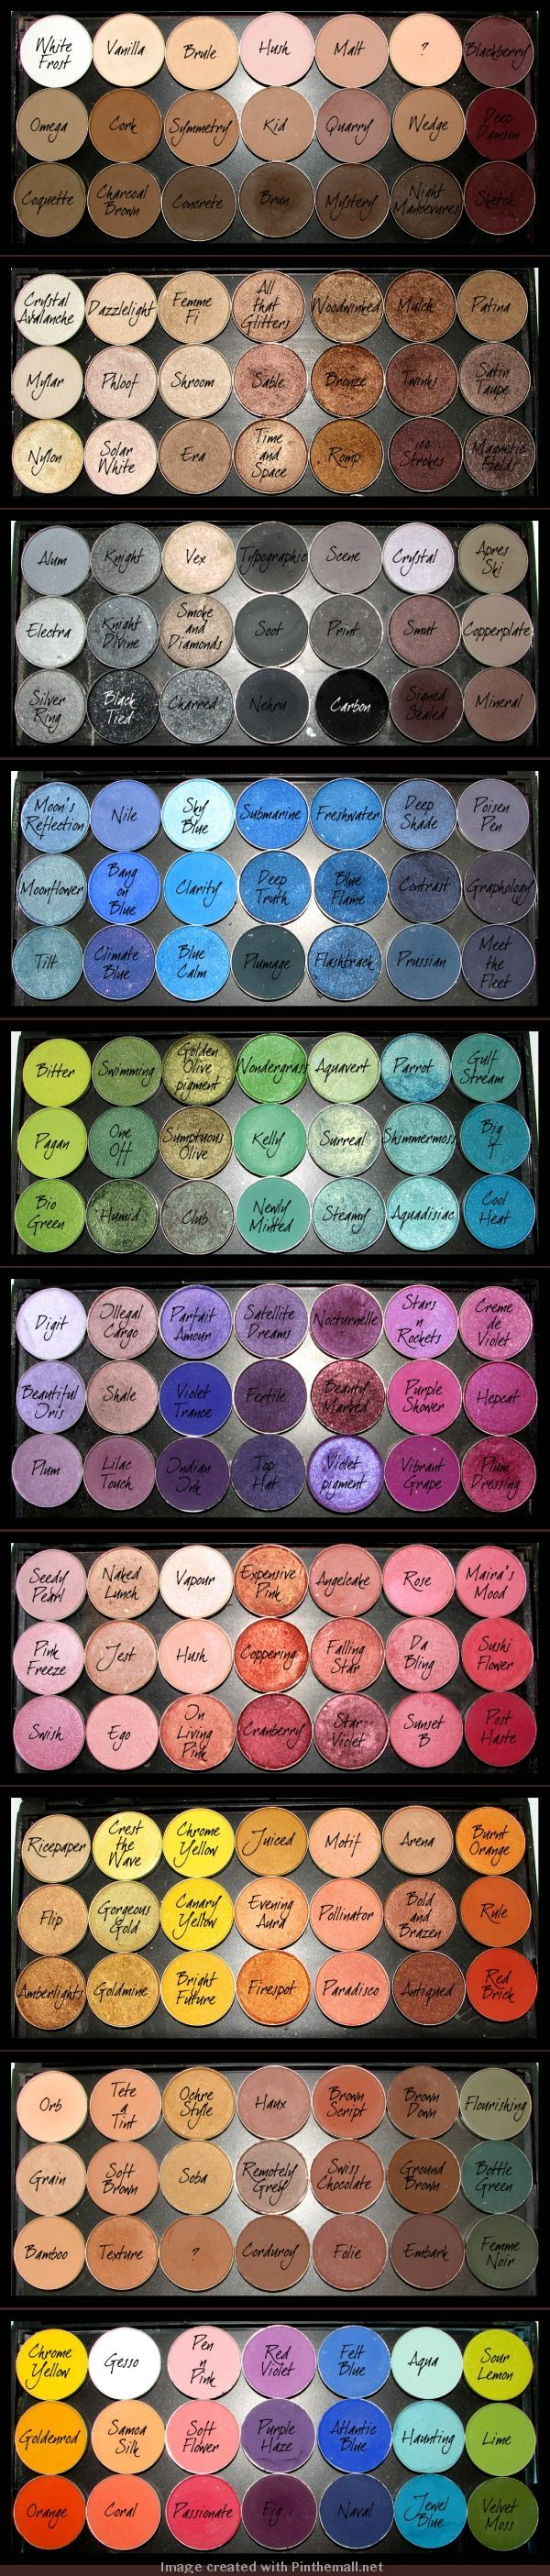 MAC eyeshadows | #clairetaylormua